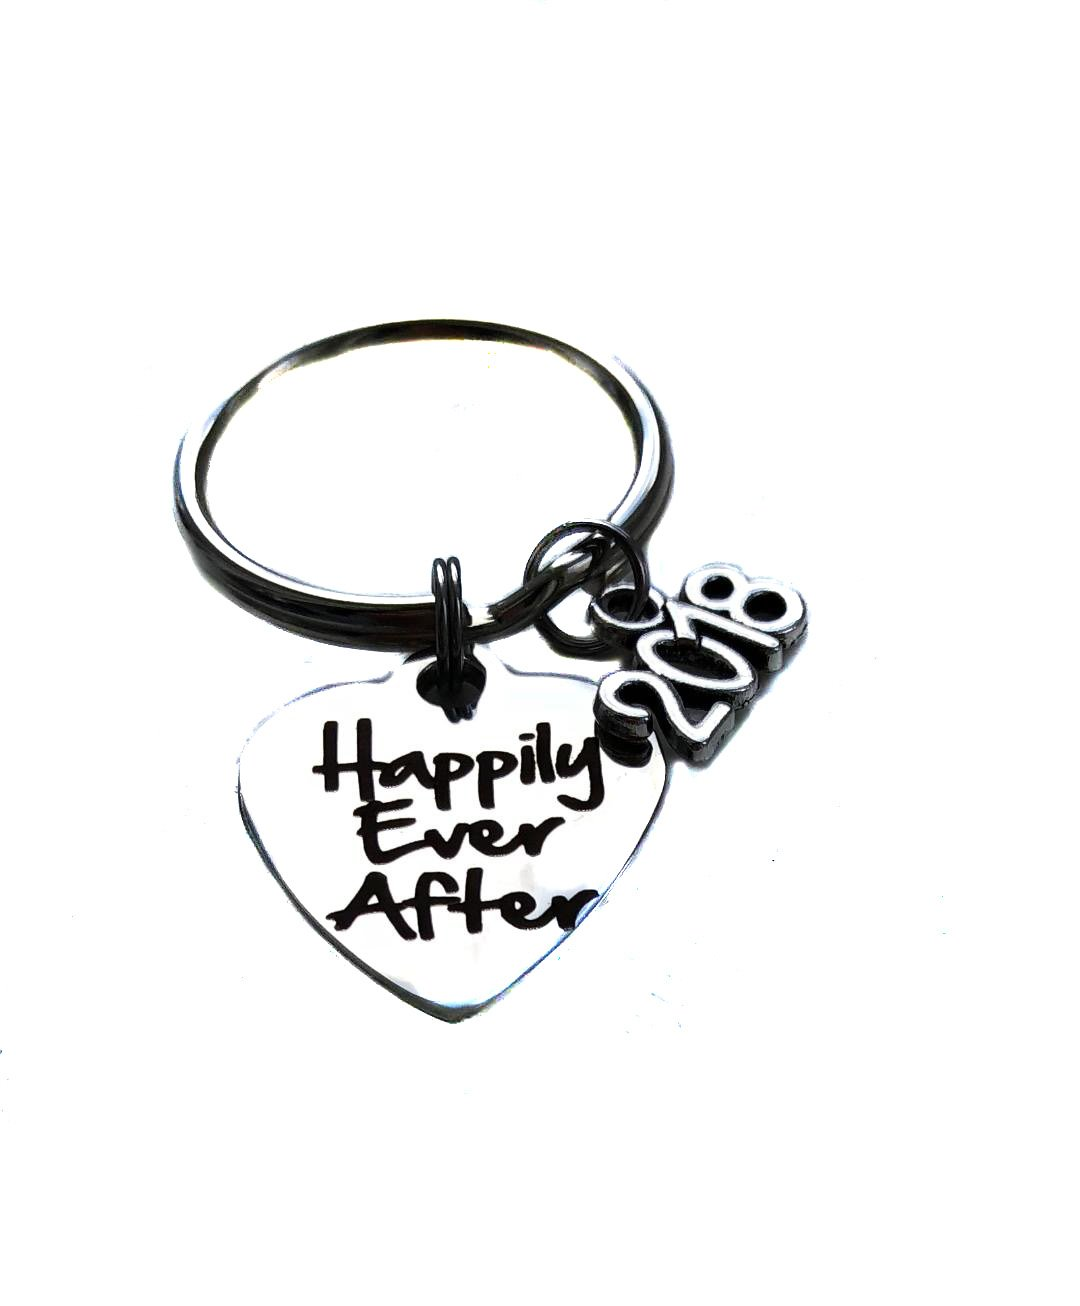 Stainless Steel Happily Ever After 2018 Charm, Keychain, Wedding Engagement Bridal Shower Gift